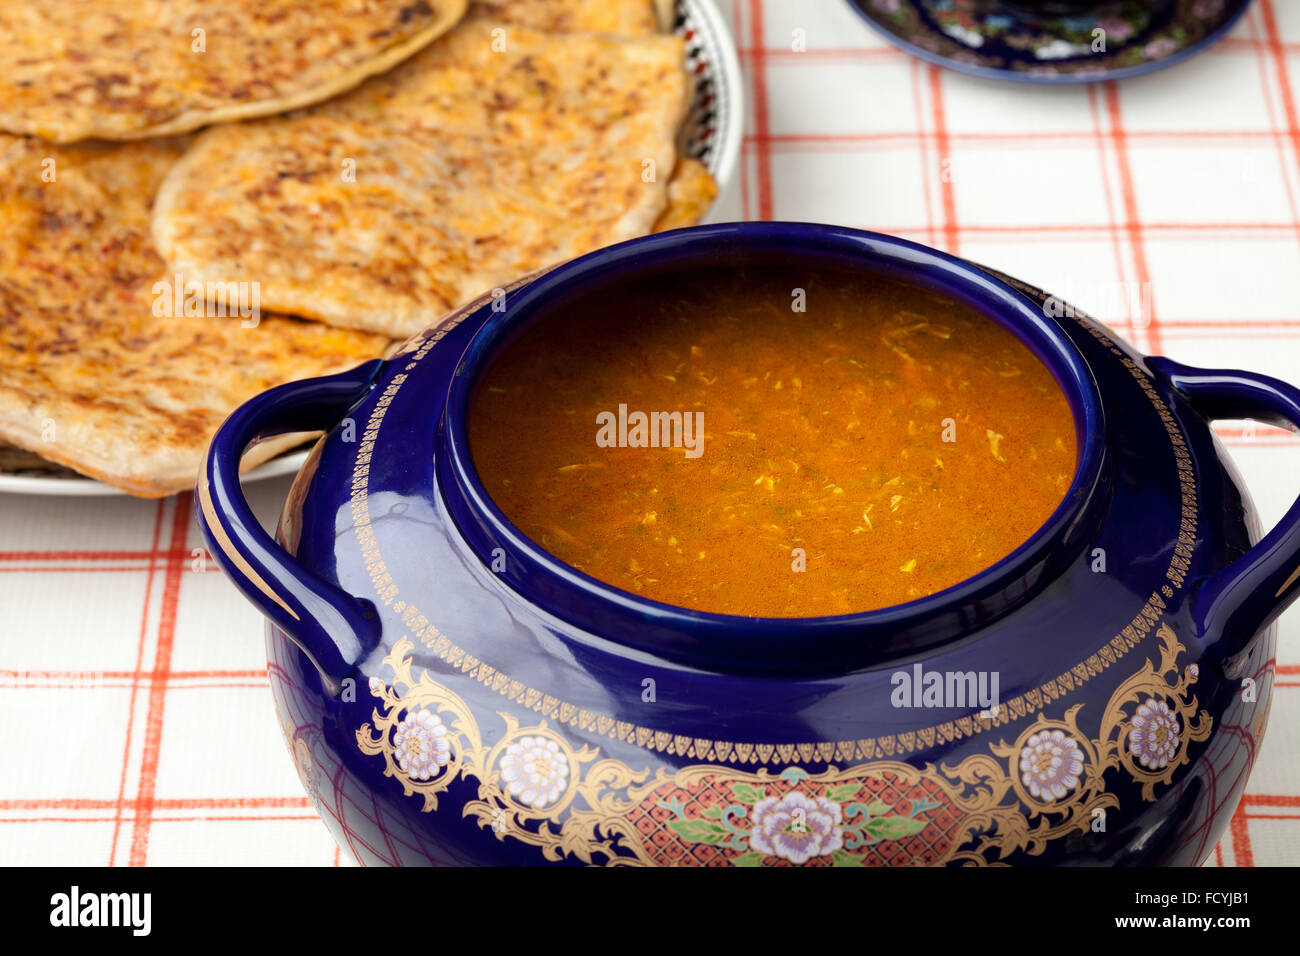 Moroccan harira soup and filled pancakes for ramadan - Stock Image